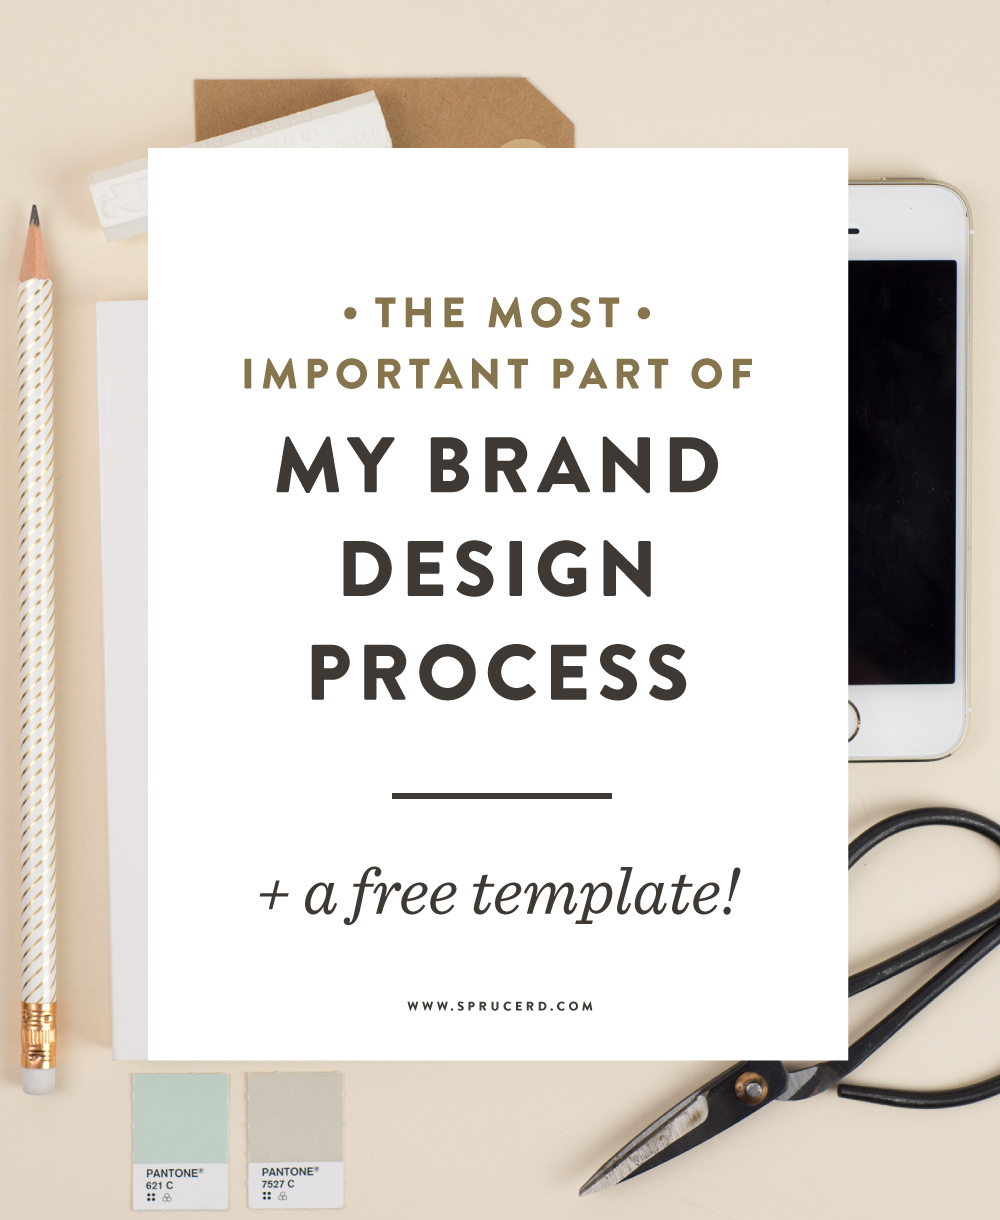 The most important part of my branding logo design process is the questionnaire. This helps me understand the client, develop a strategy that suits their needs and design around their vision. I'm sharing my client branding questionnaire that I send my clients, that has been one of the best processes in my freelance business.